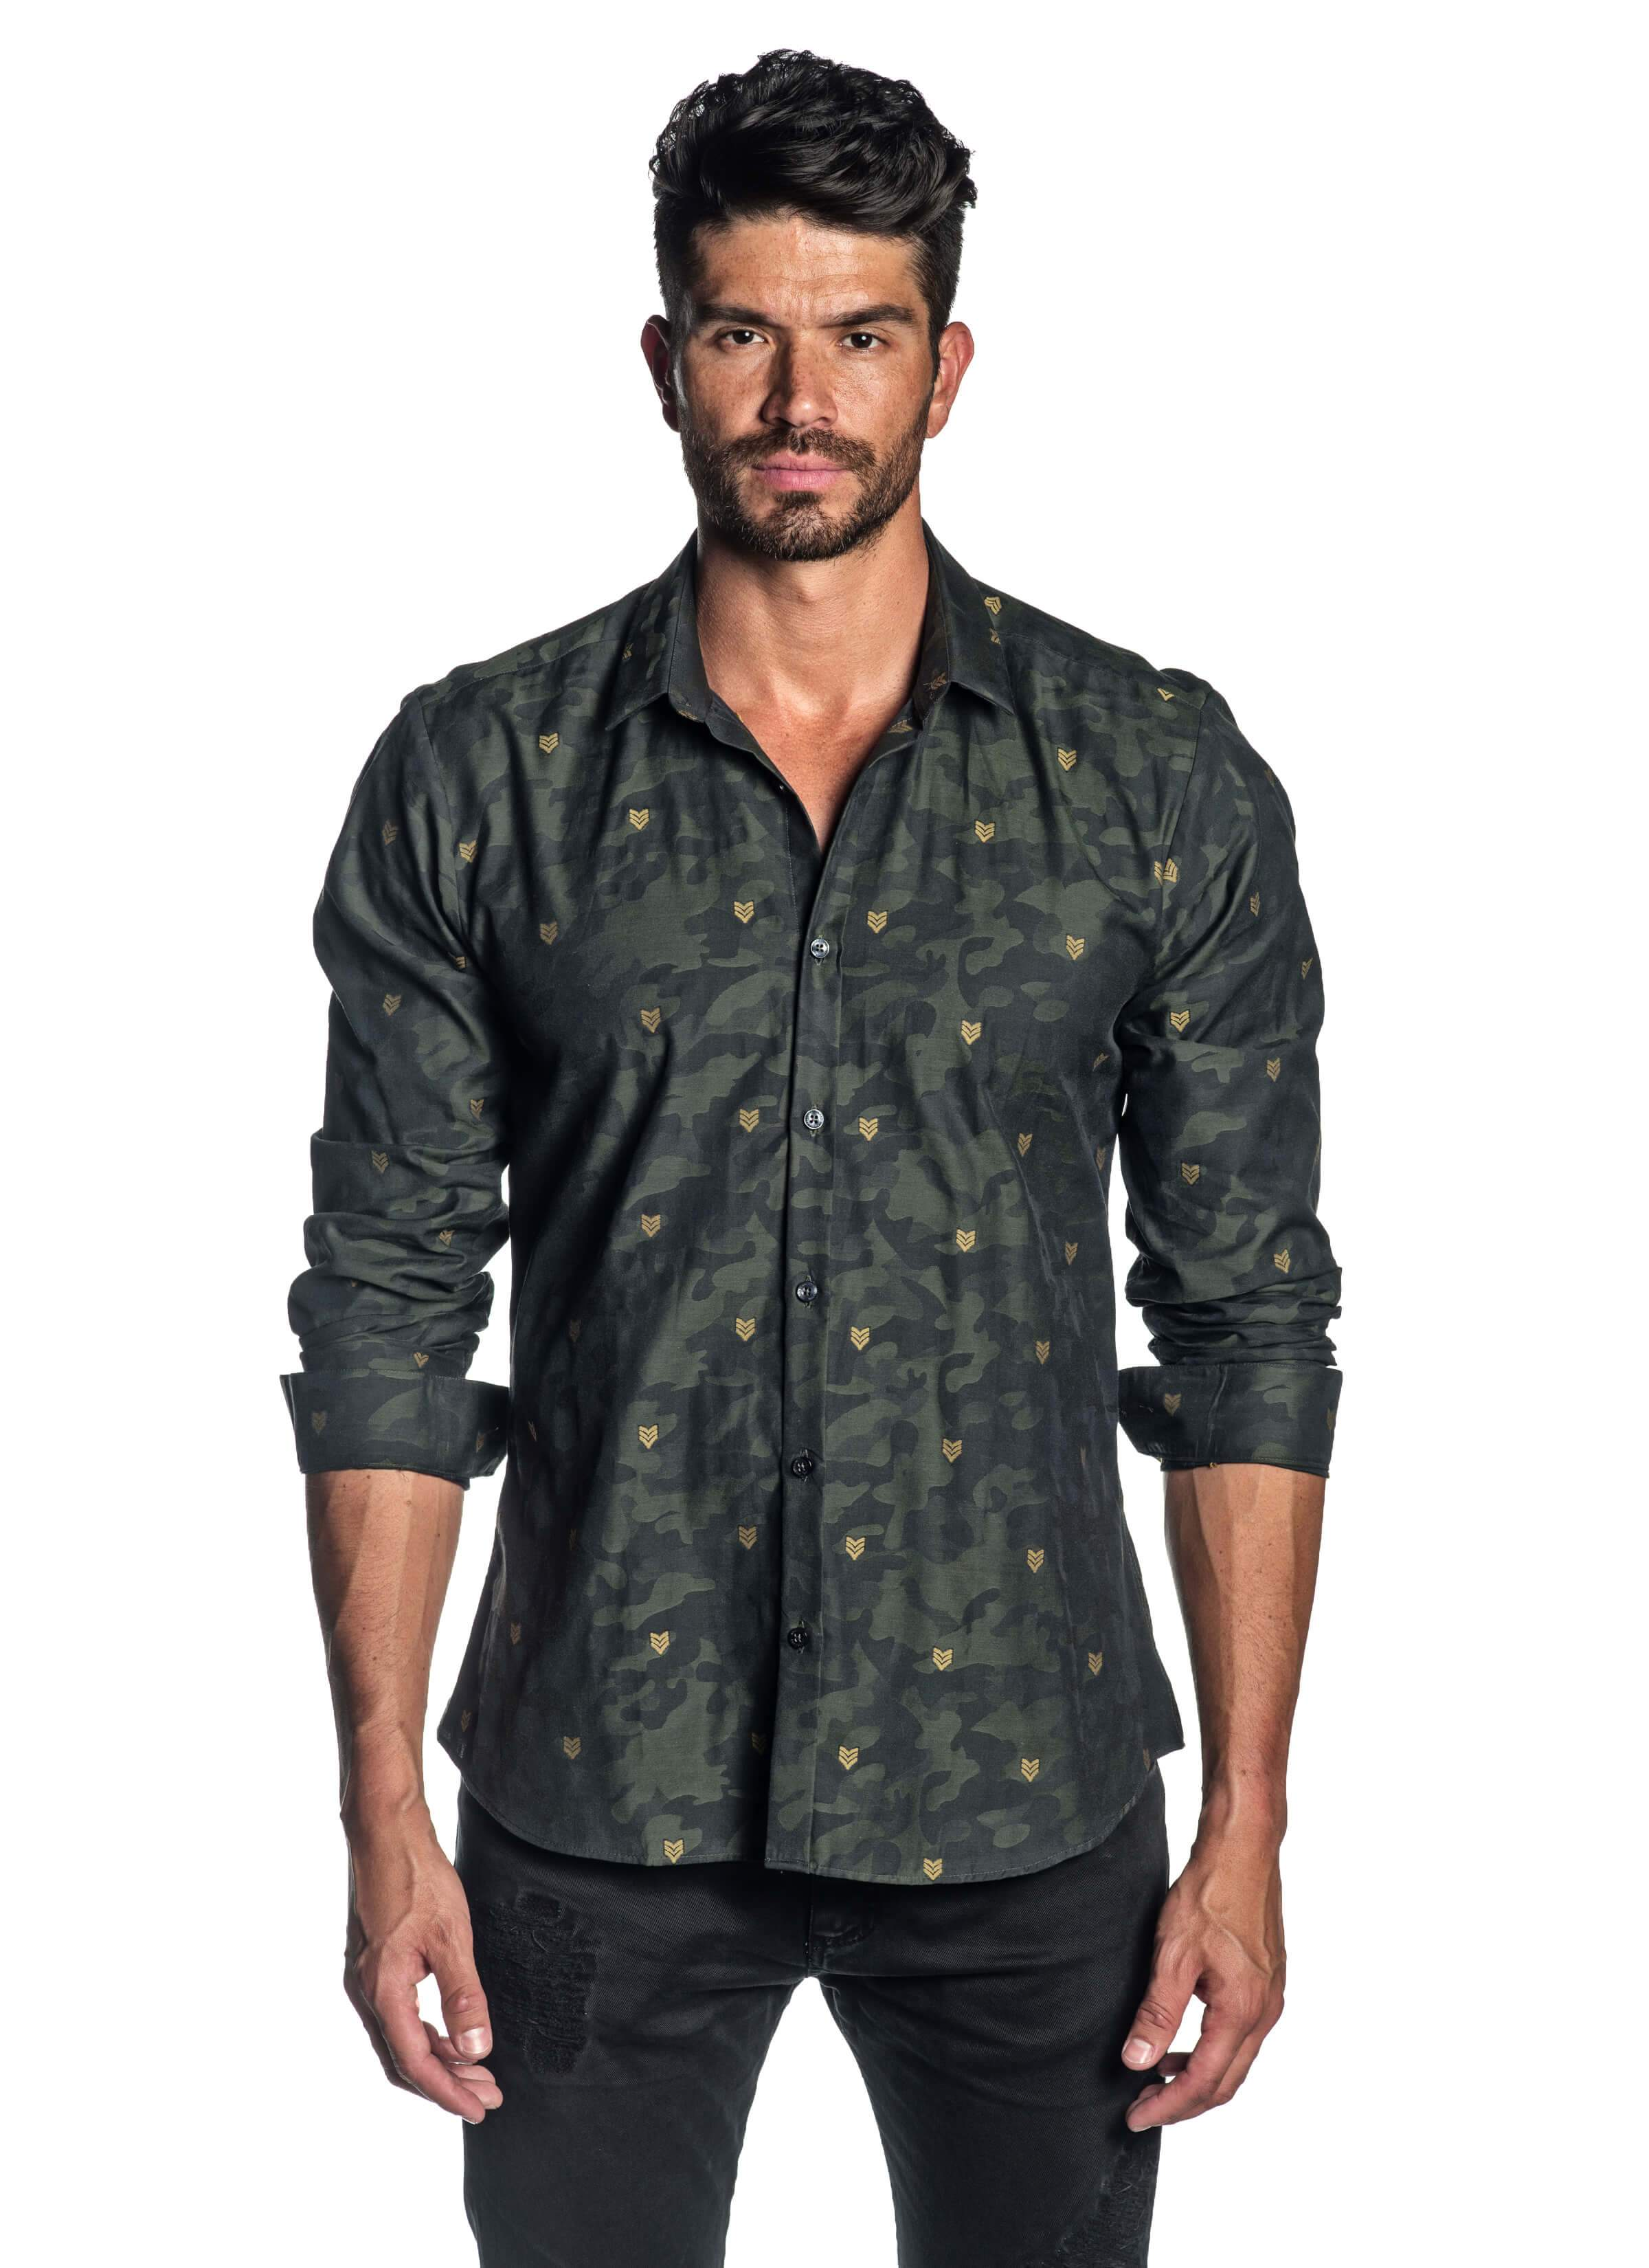 Green Camouflage Fils Coupe Jacquard Shirt for Men - AH-T-5101 - Front - Jared Lang